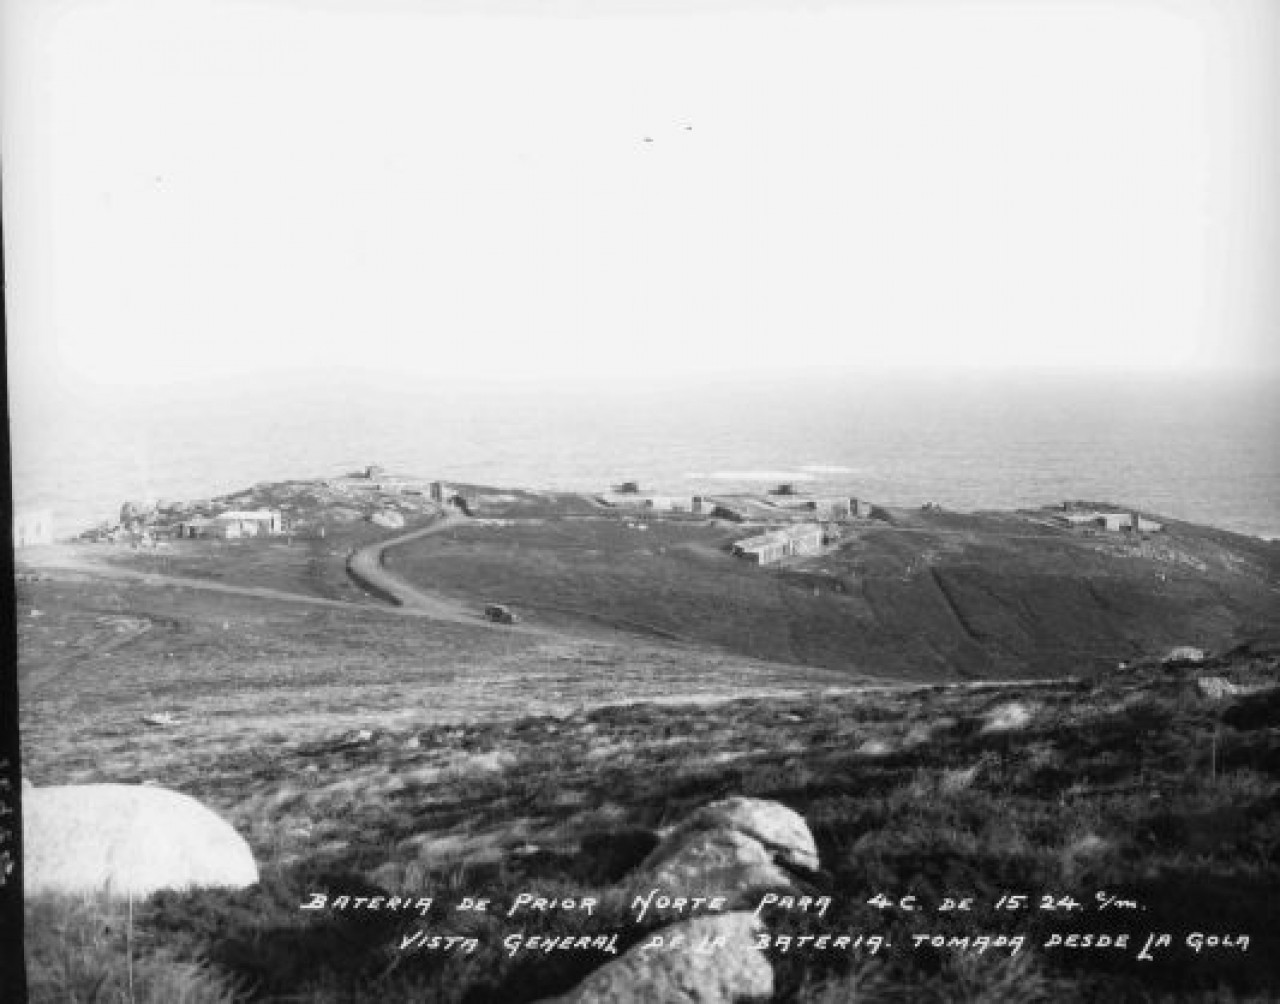 vista_general_prior_norte_1928